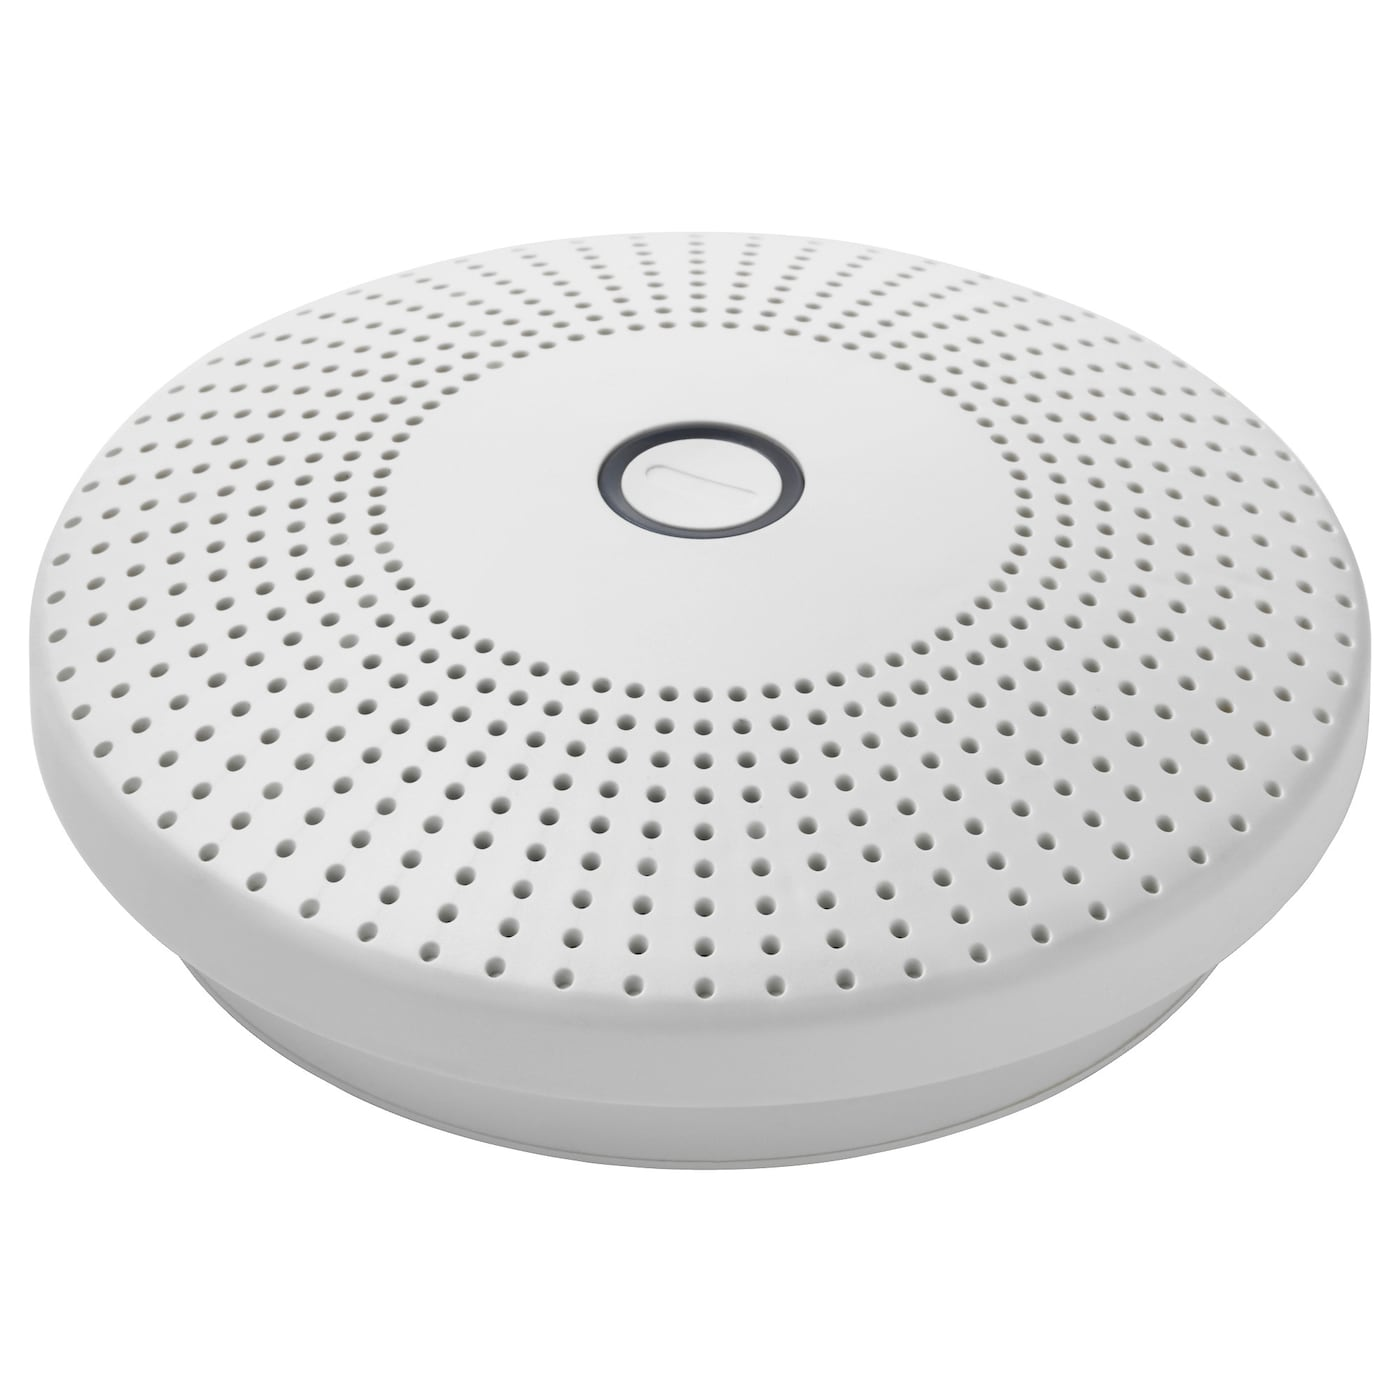 IKEA VAKTA optical smoke alarm A flashing red light lets you know that the smoke alarm is active.